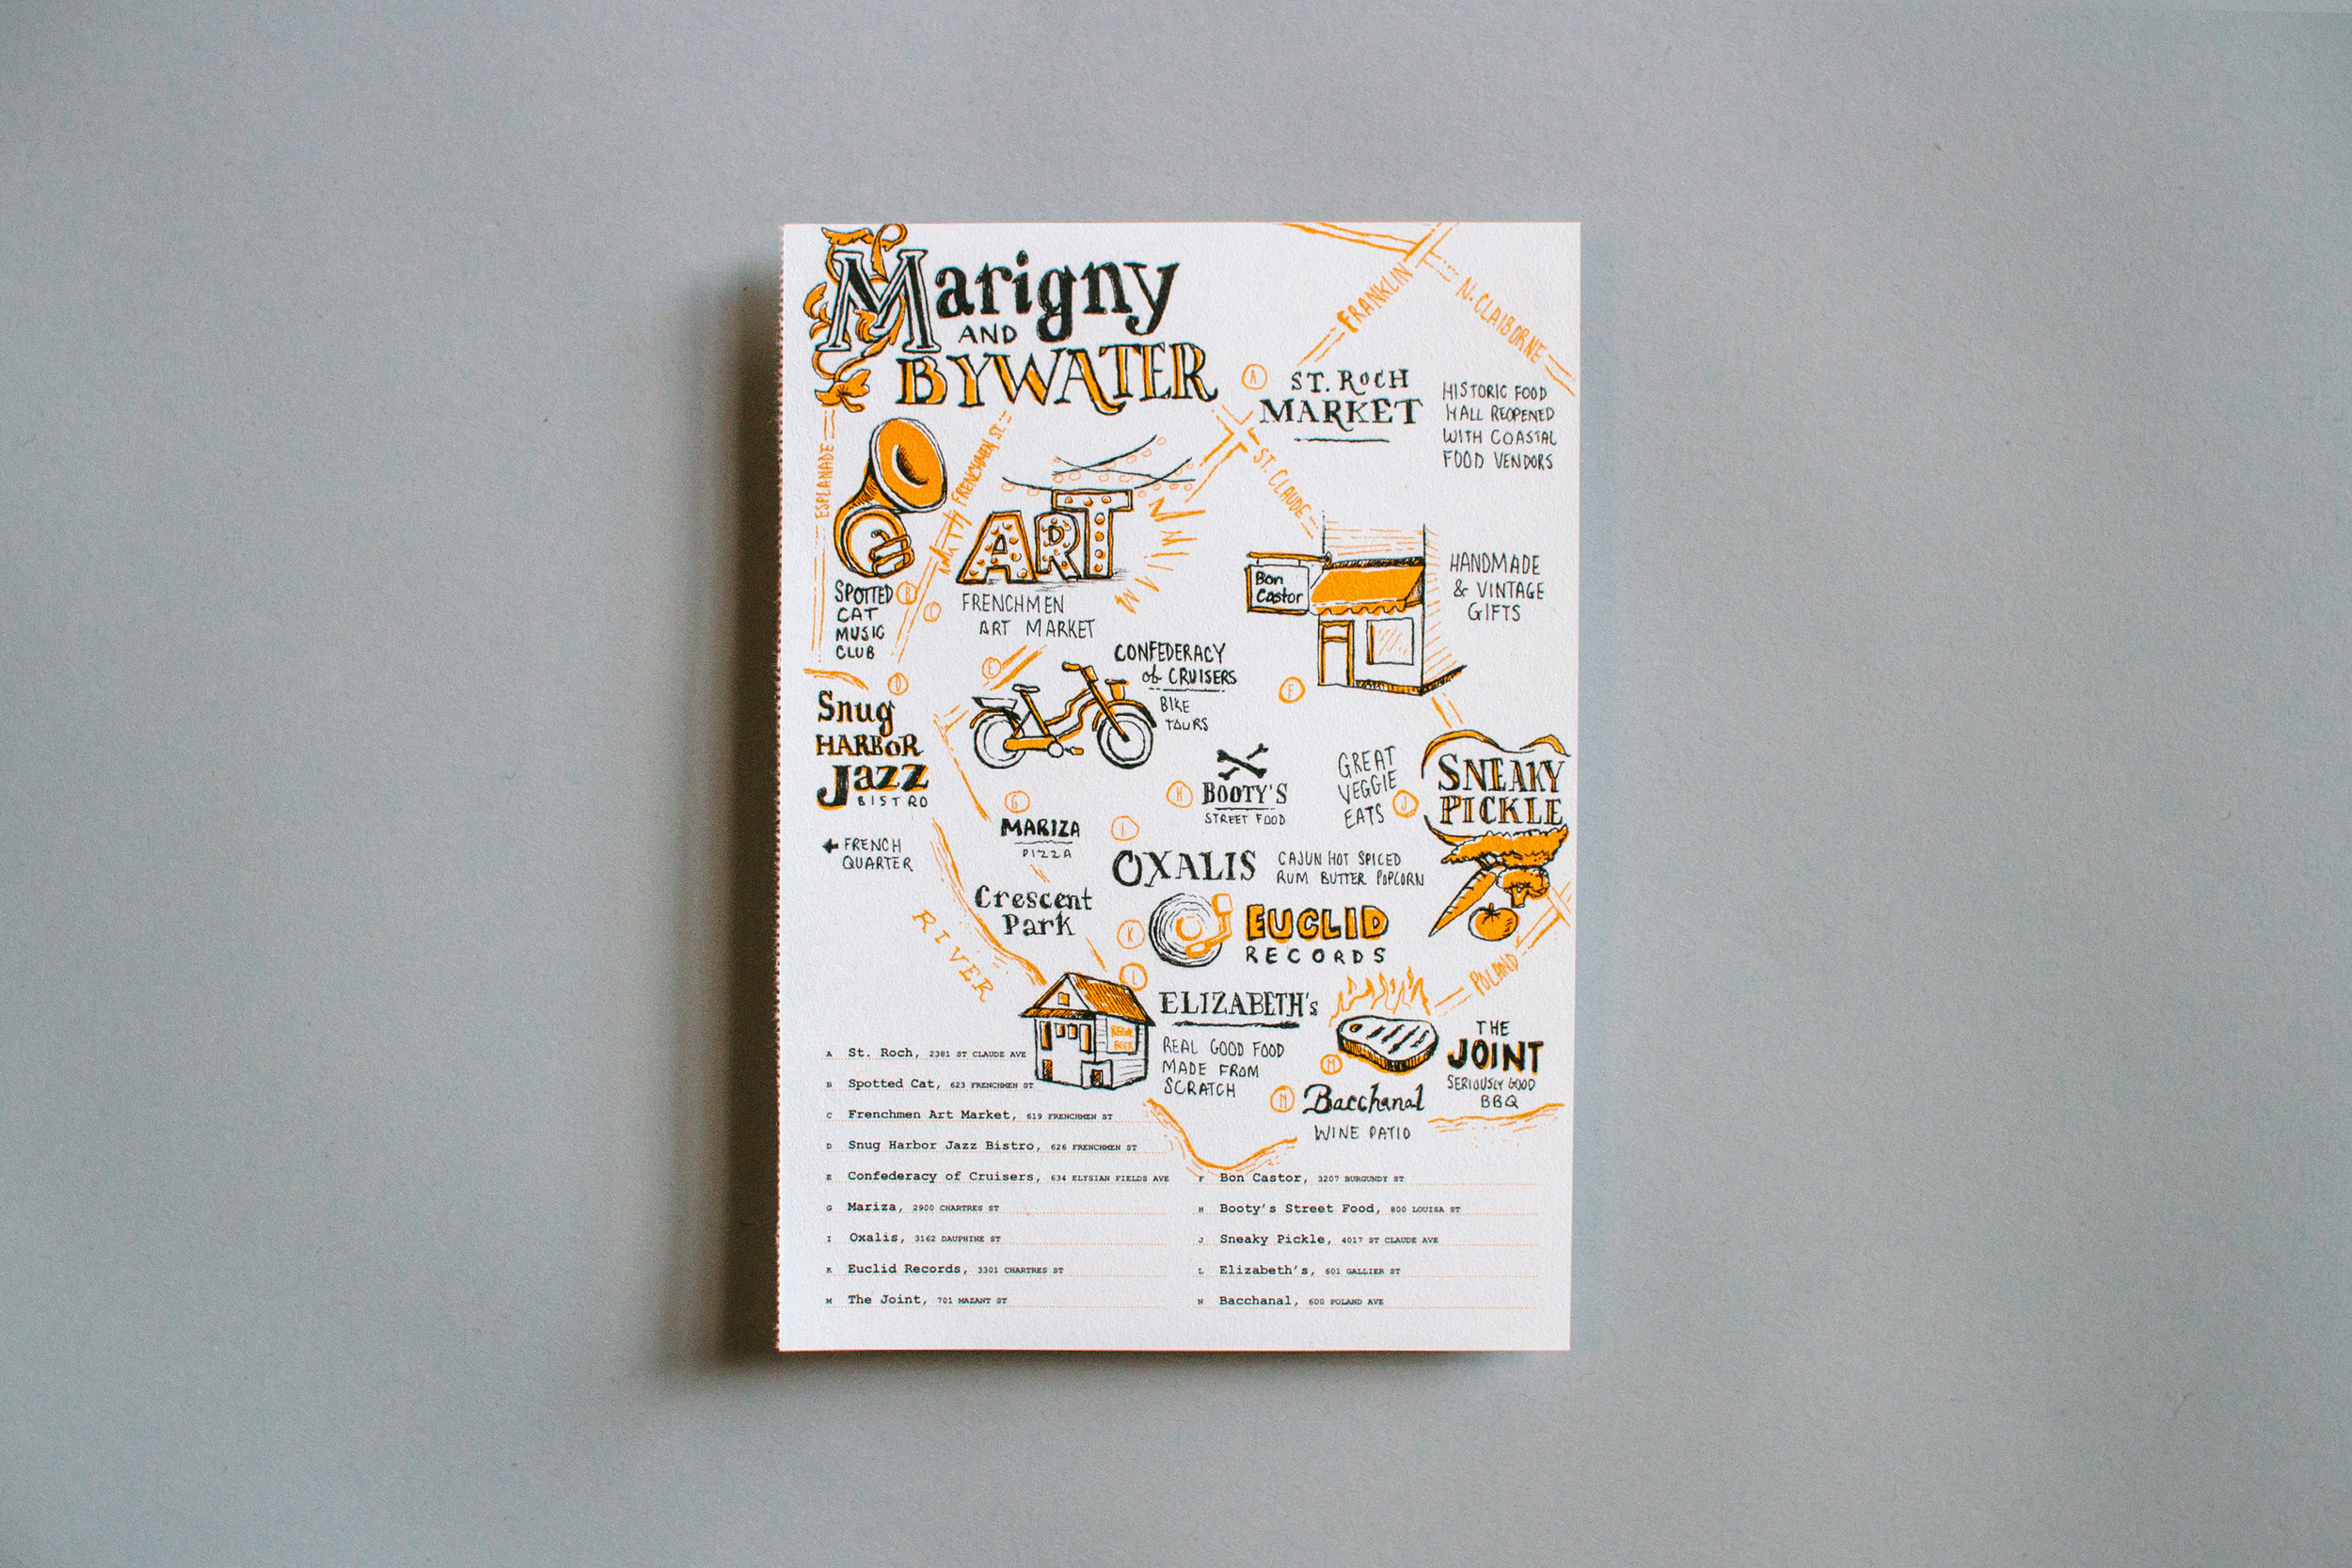 Illustrated Marigny and Bywater neighborhood maps and city guides to New Orleans, featuring St. Roch Market, Frenchmen Art Market, Spotted Cat, Snug Harbor, Oxalis, Crescent Park, Euclid Records, the Joint, Elizabeth's.